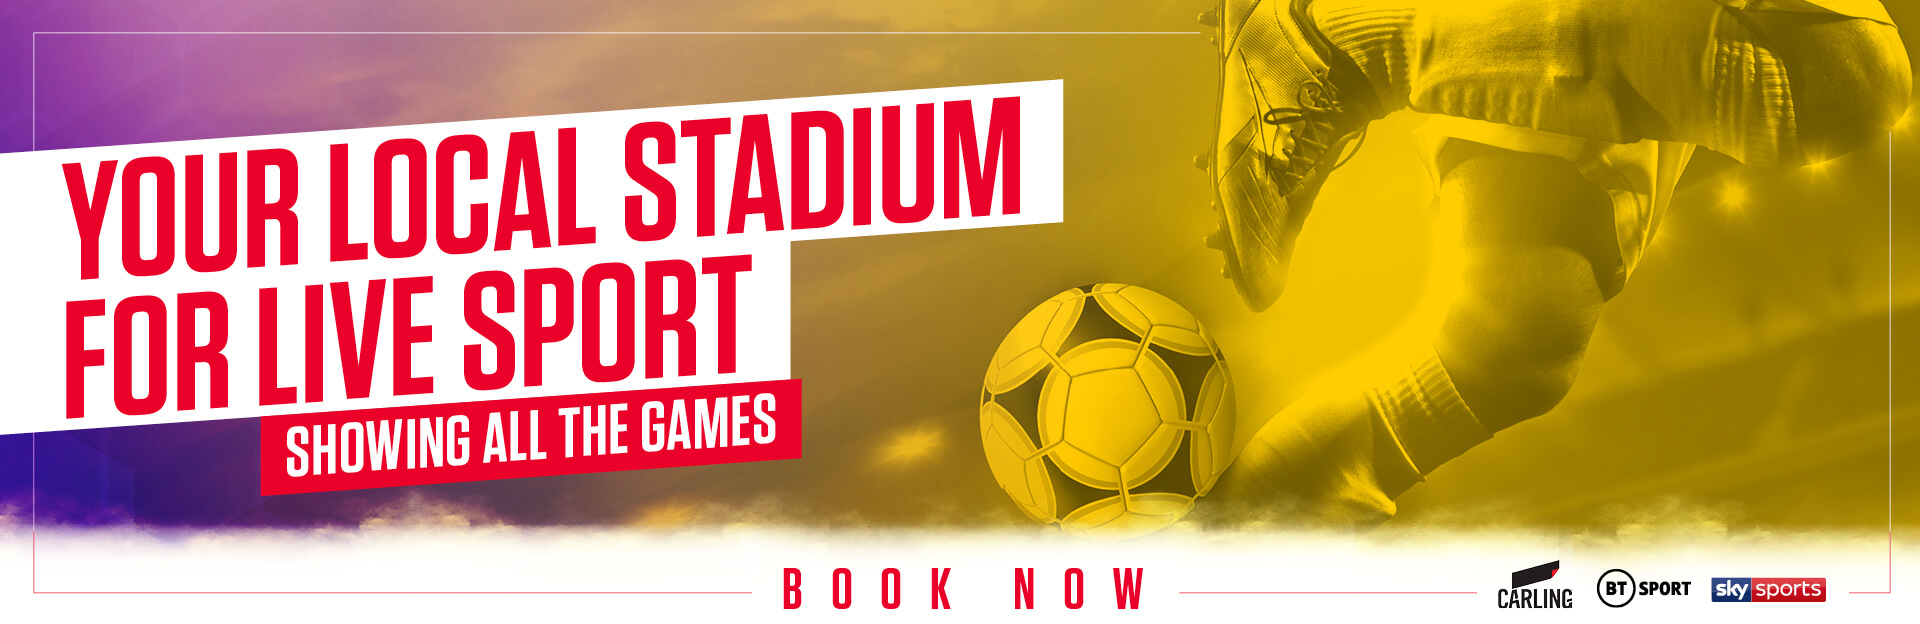 Live Sports at ONeills Virtual